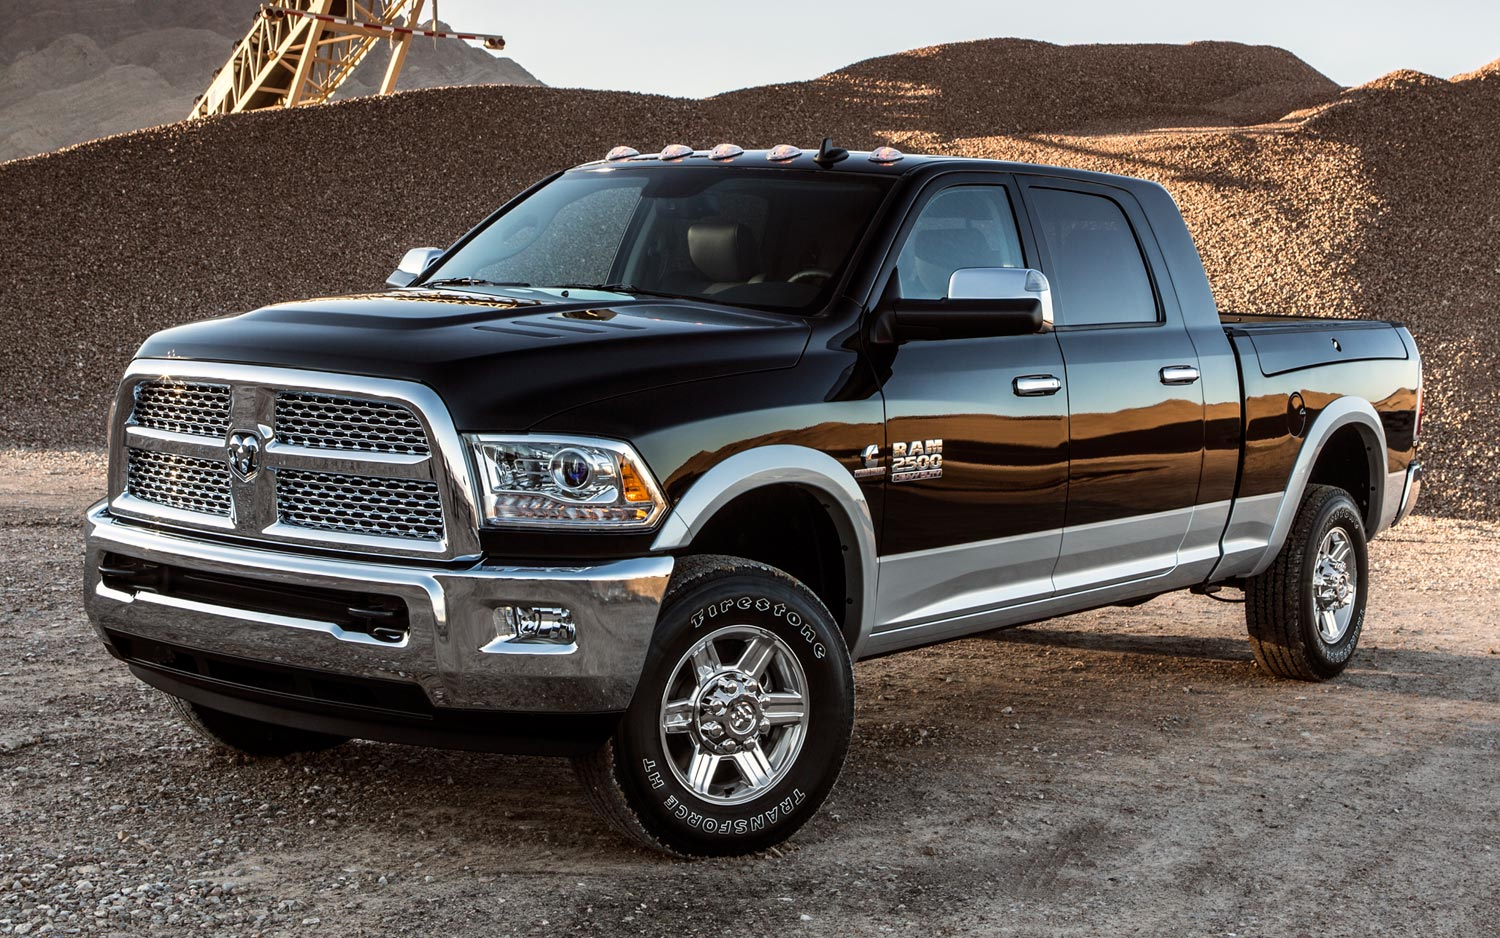 2013 Ram 2500 Crew Cab Front Three Quarters View